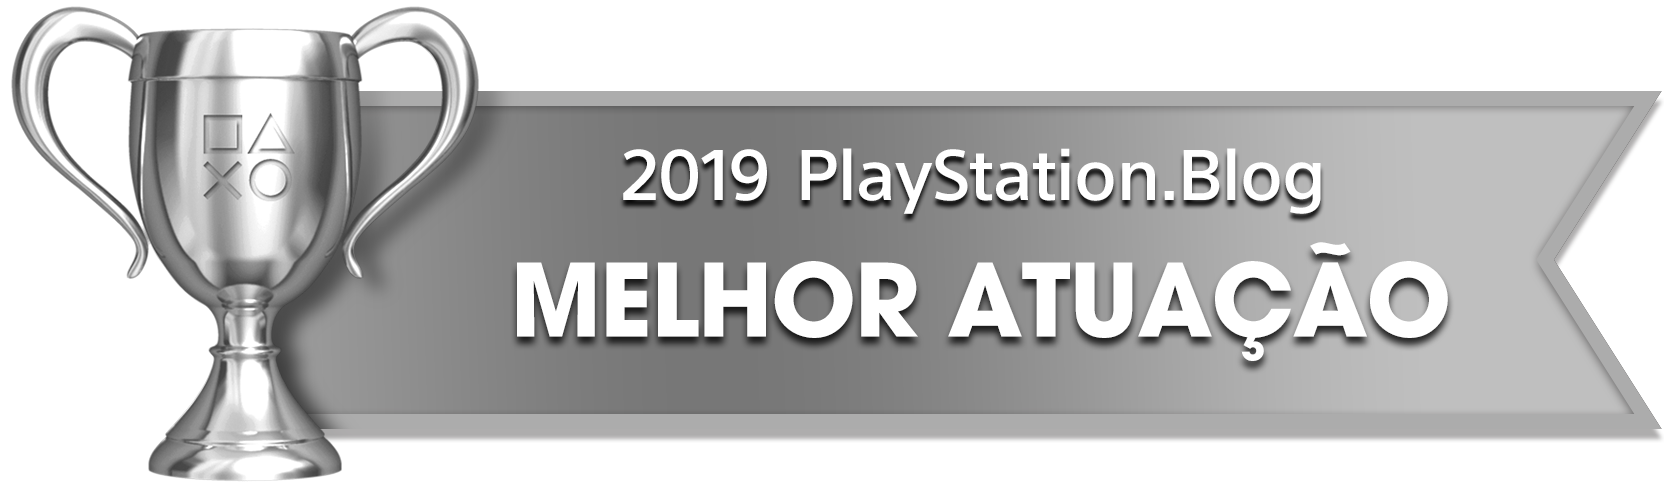 PS Blog Game of the Year 2019 - Best Performance - 3 - Silver